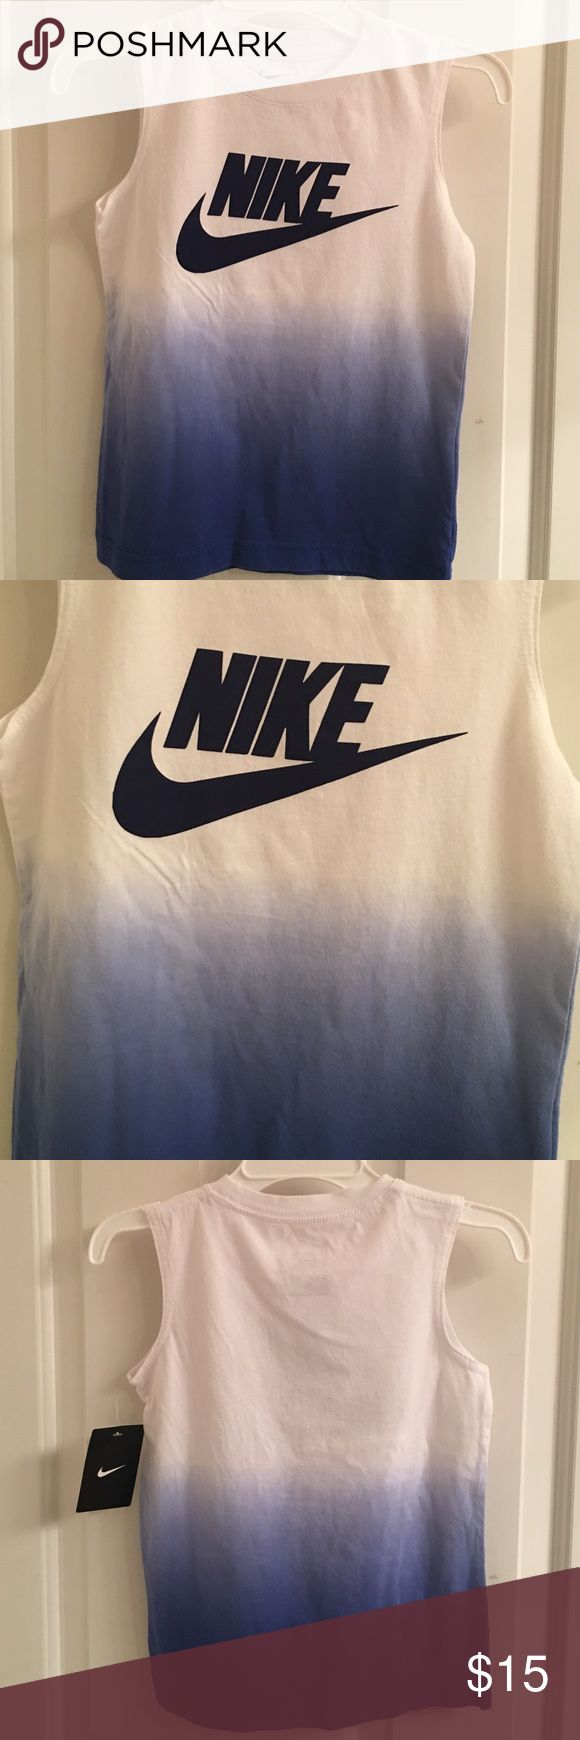 NWT- Nike Blue And White Tee-Shirt NWT- Nike sleeveless tee-shirt. Crewneck. White and blue, with Nike in black on the front. Size 6. Excellent condition. Nike Shirts & Tops Tank Tops